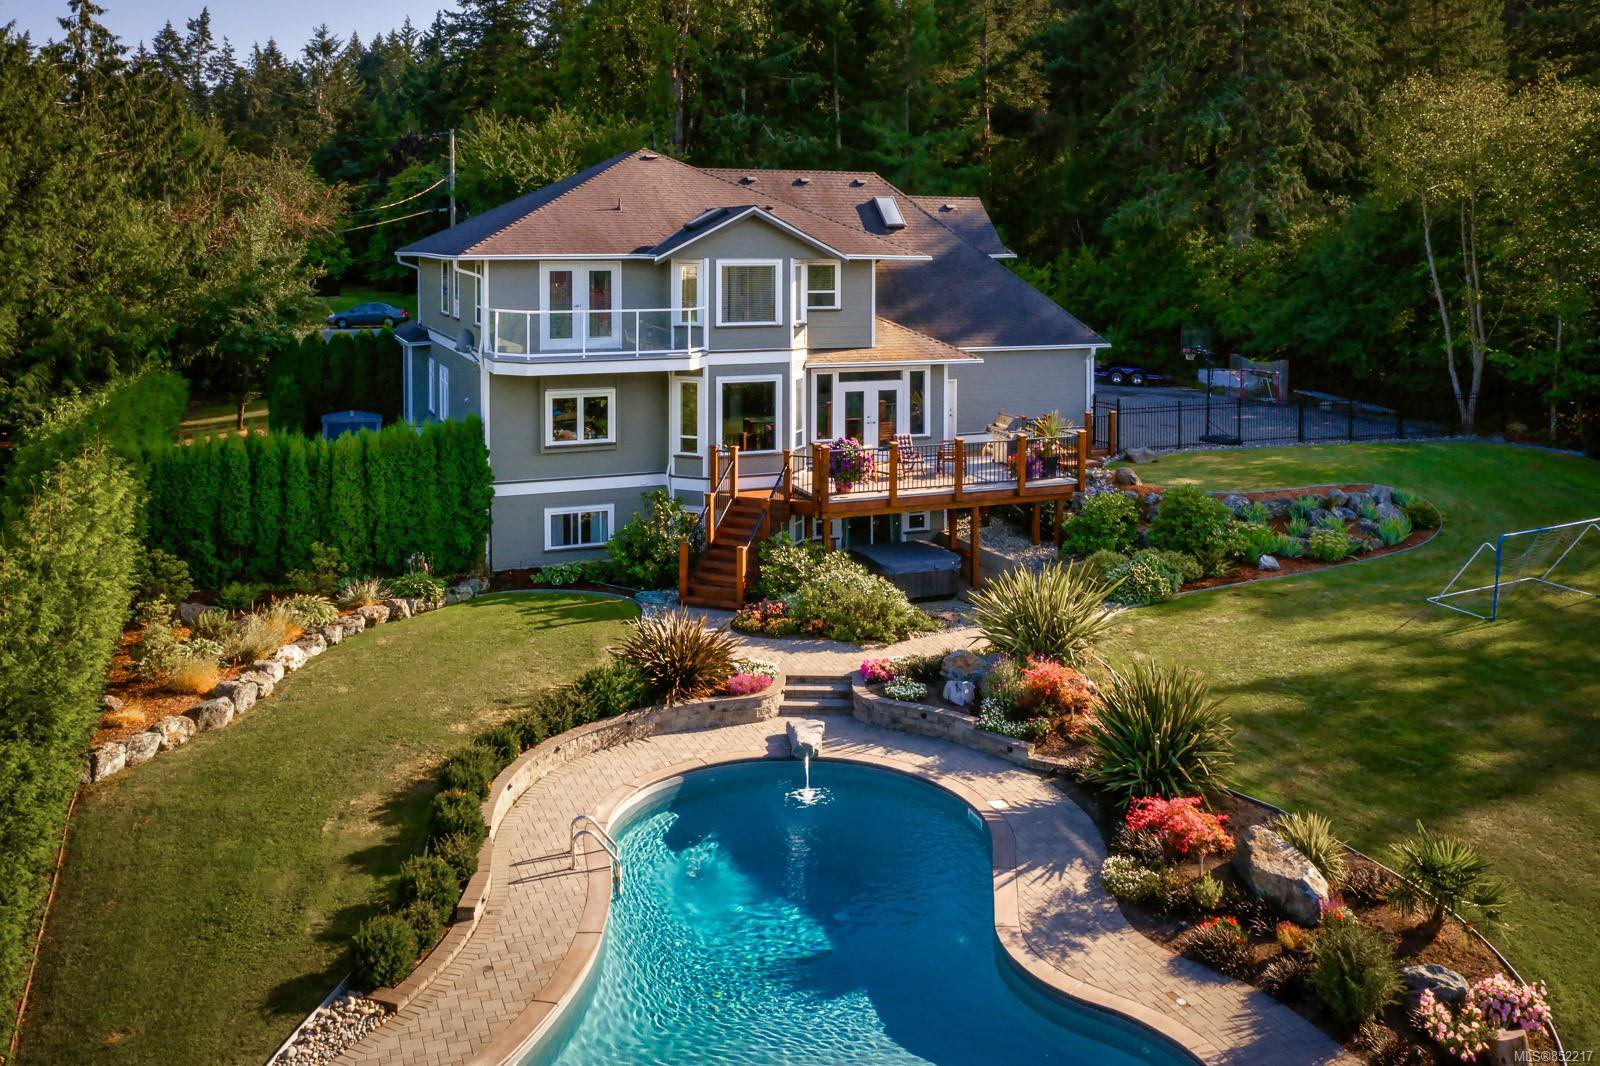 Main Photo: 940 Dogwood Rd in : NS Ardmore House for sale (North Saanich)  : MLS®# 852217